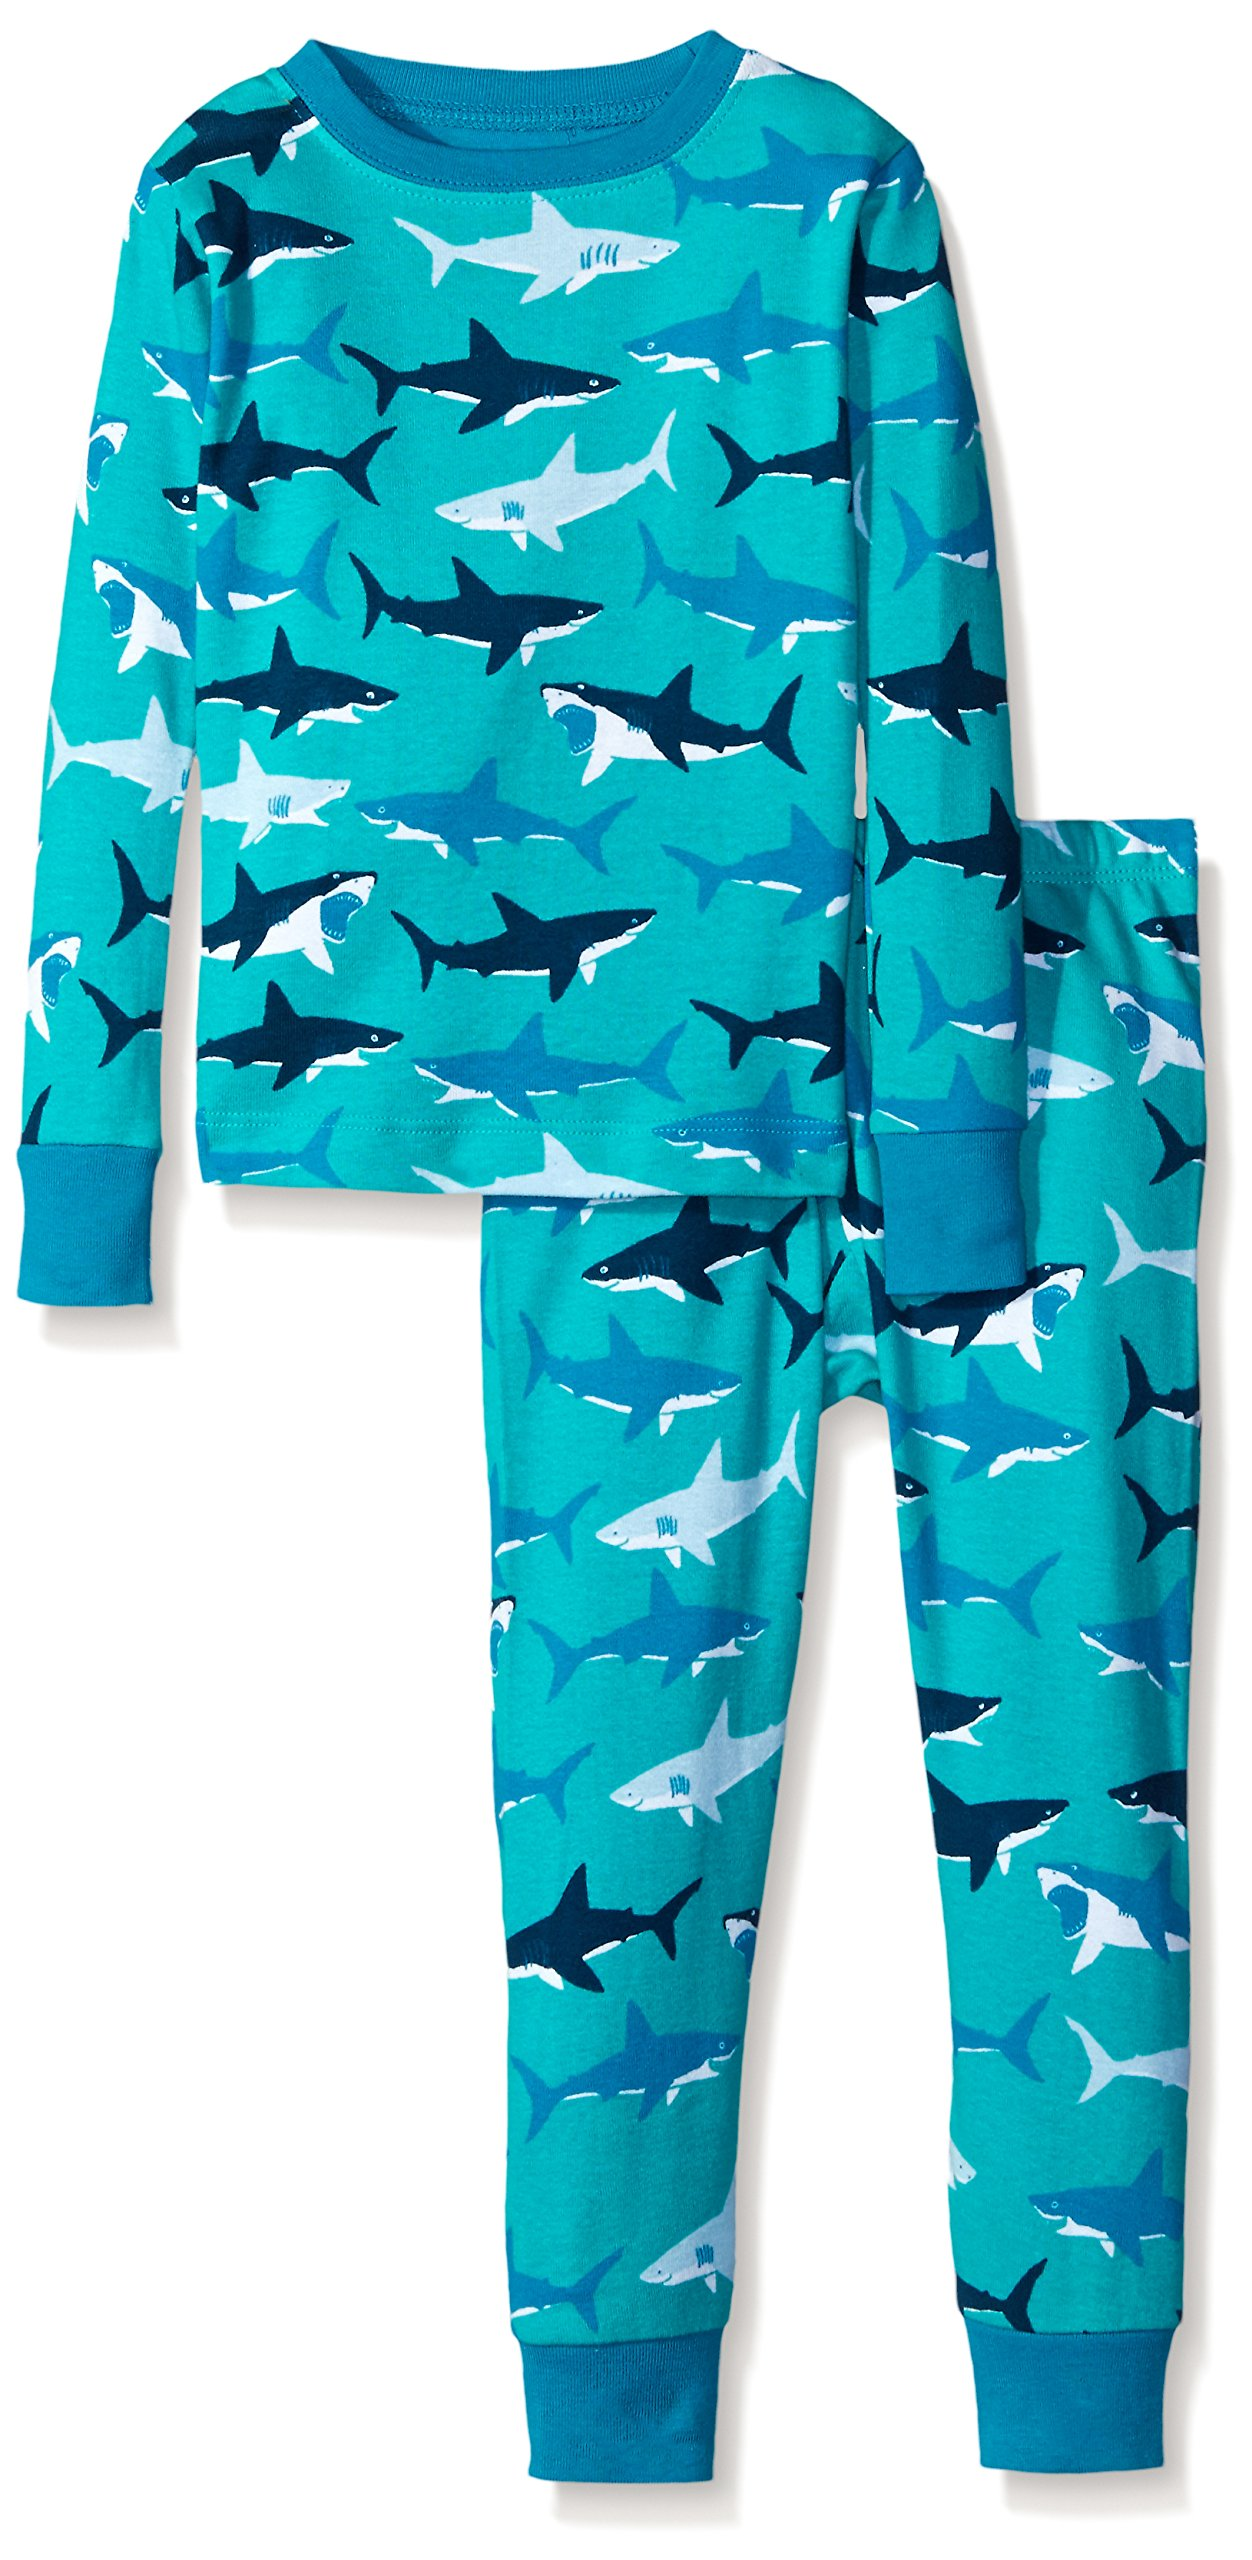 Hatley Little Boys Great White Sharks Pajama Set, Blue, 3